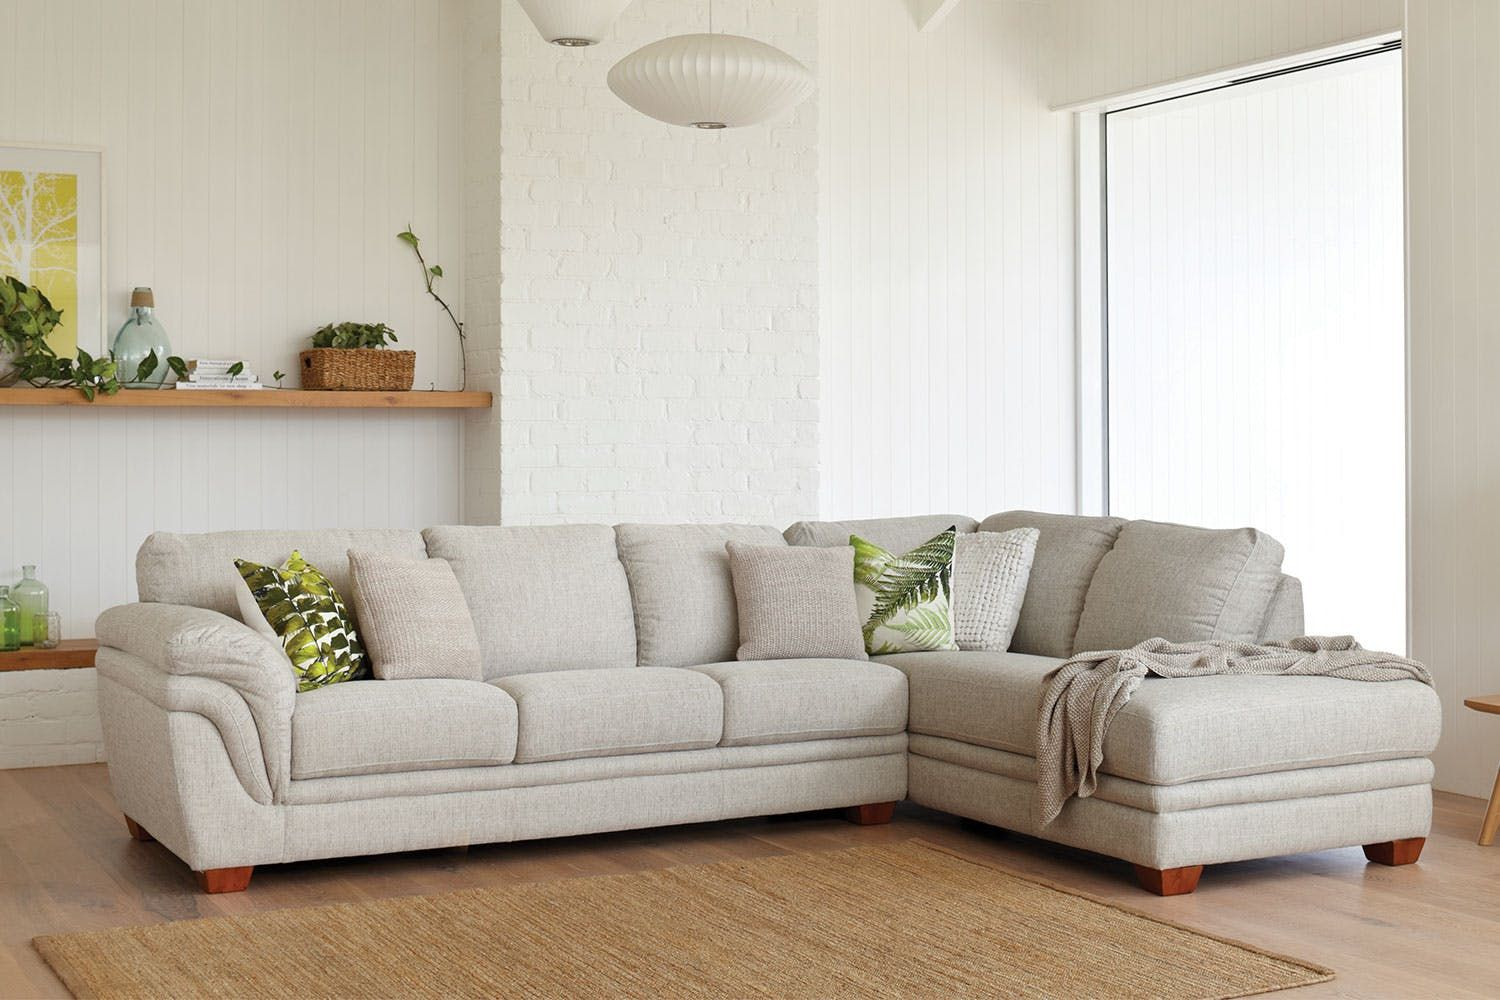 Demi 3 Seater Fabric Lounge with Chaise by La-Z-Boy | Harvey Norman ...